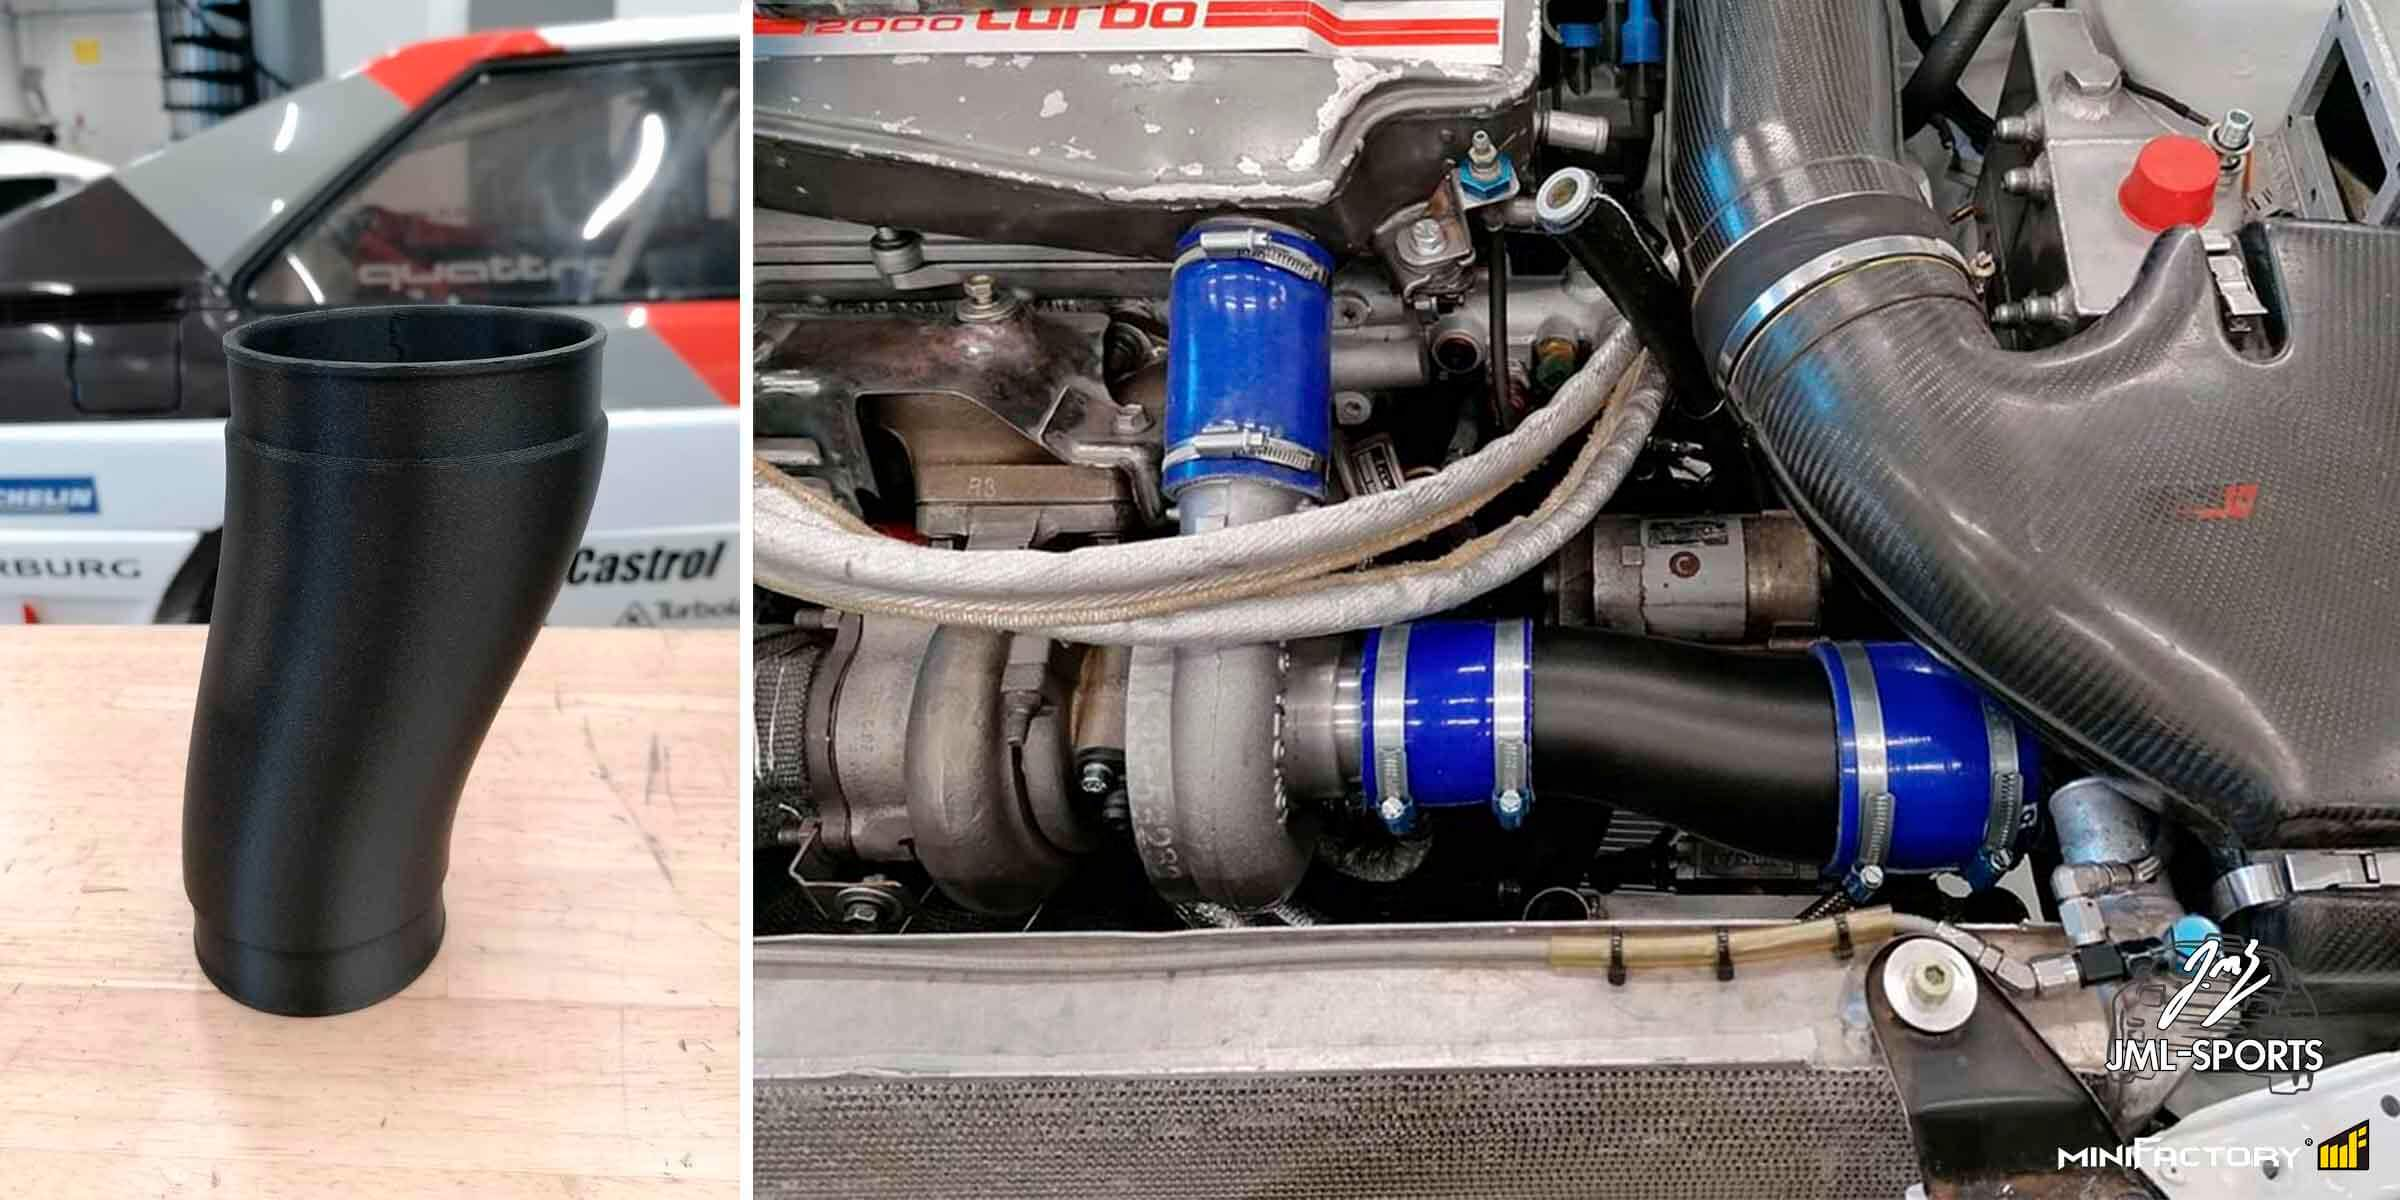 The properties of this turbo intake pipe were optimized before 3d printing.